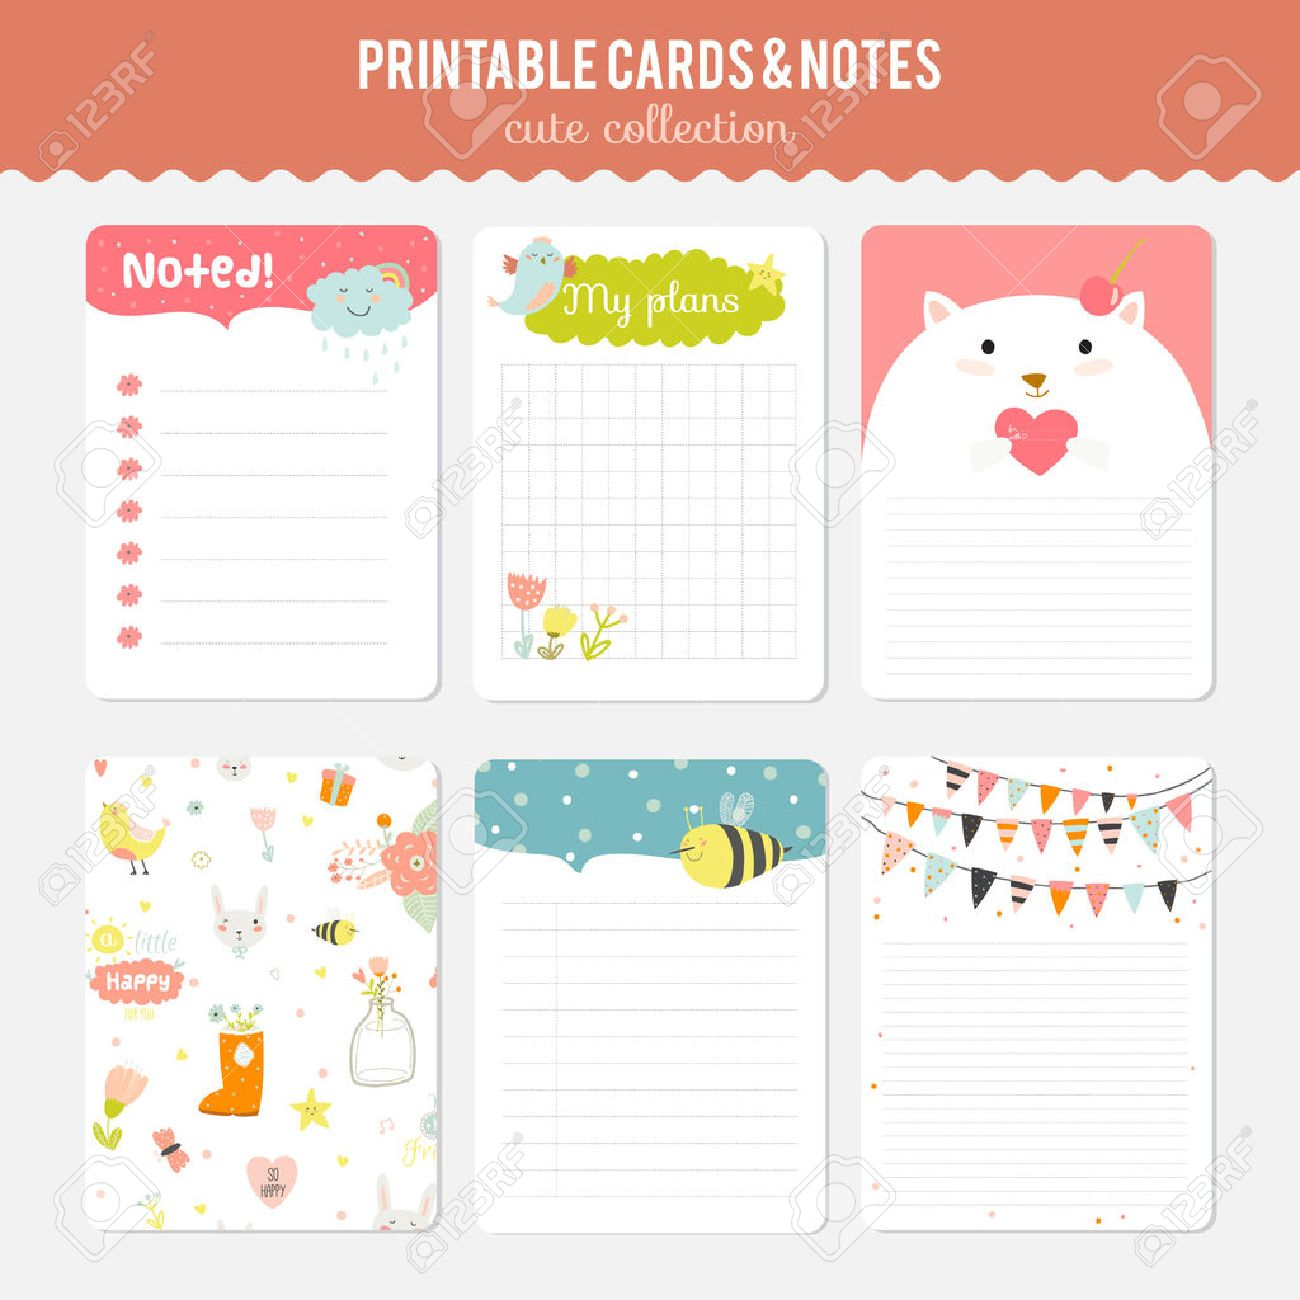 cute cards notes and stickers with spring and summer illustrations